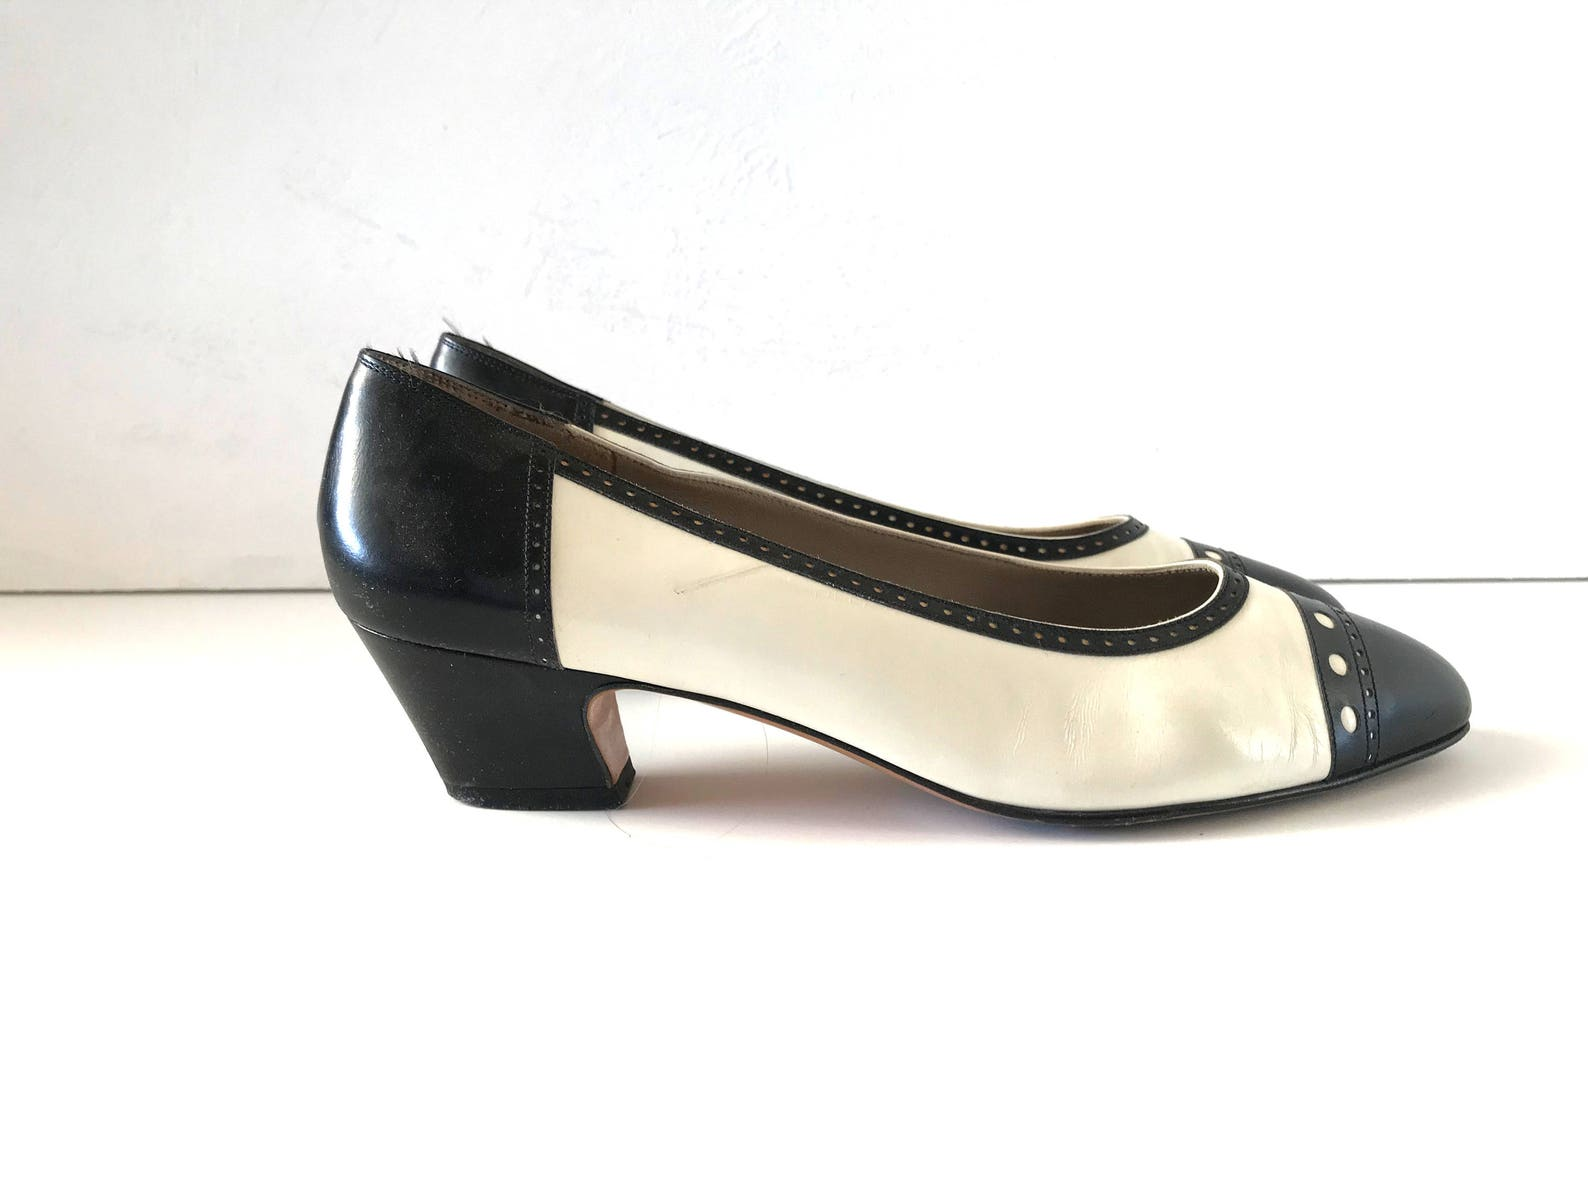 vintage 7 1/2 aa ferragamo black and white leather spectator cap-toe ballet pumps with low block heels / women's shoes size